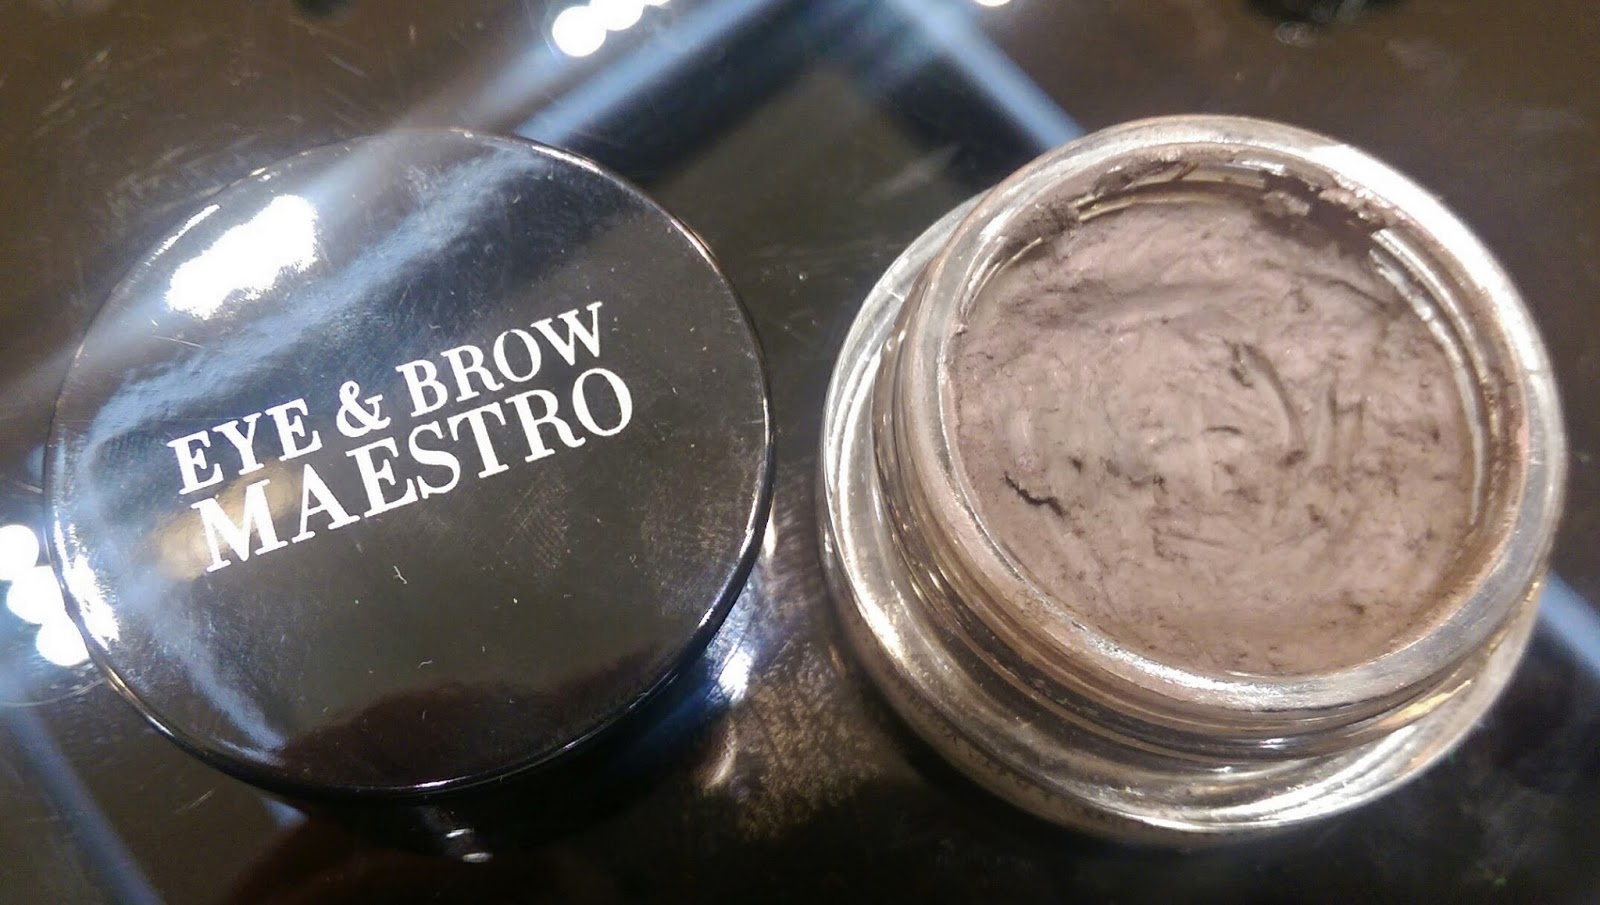 Giorgio Armani Dark Brown Eye & Brow Maestro